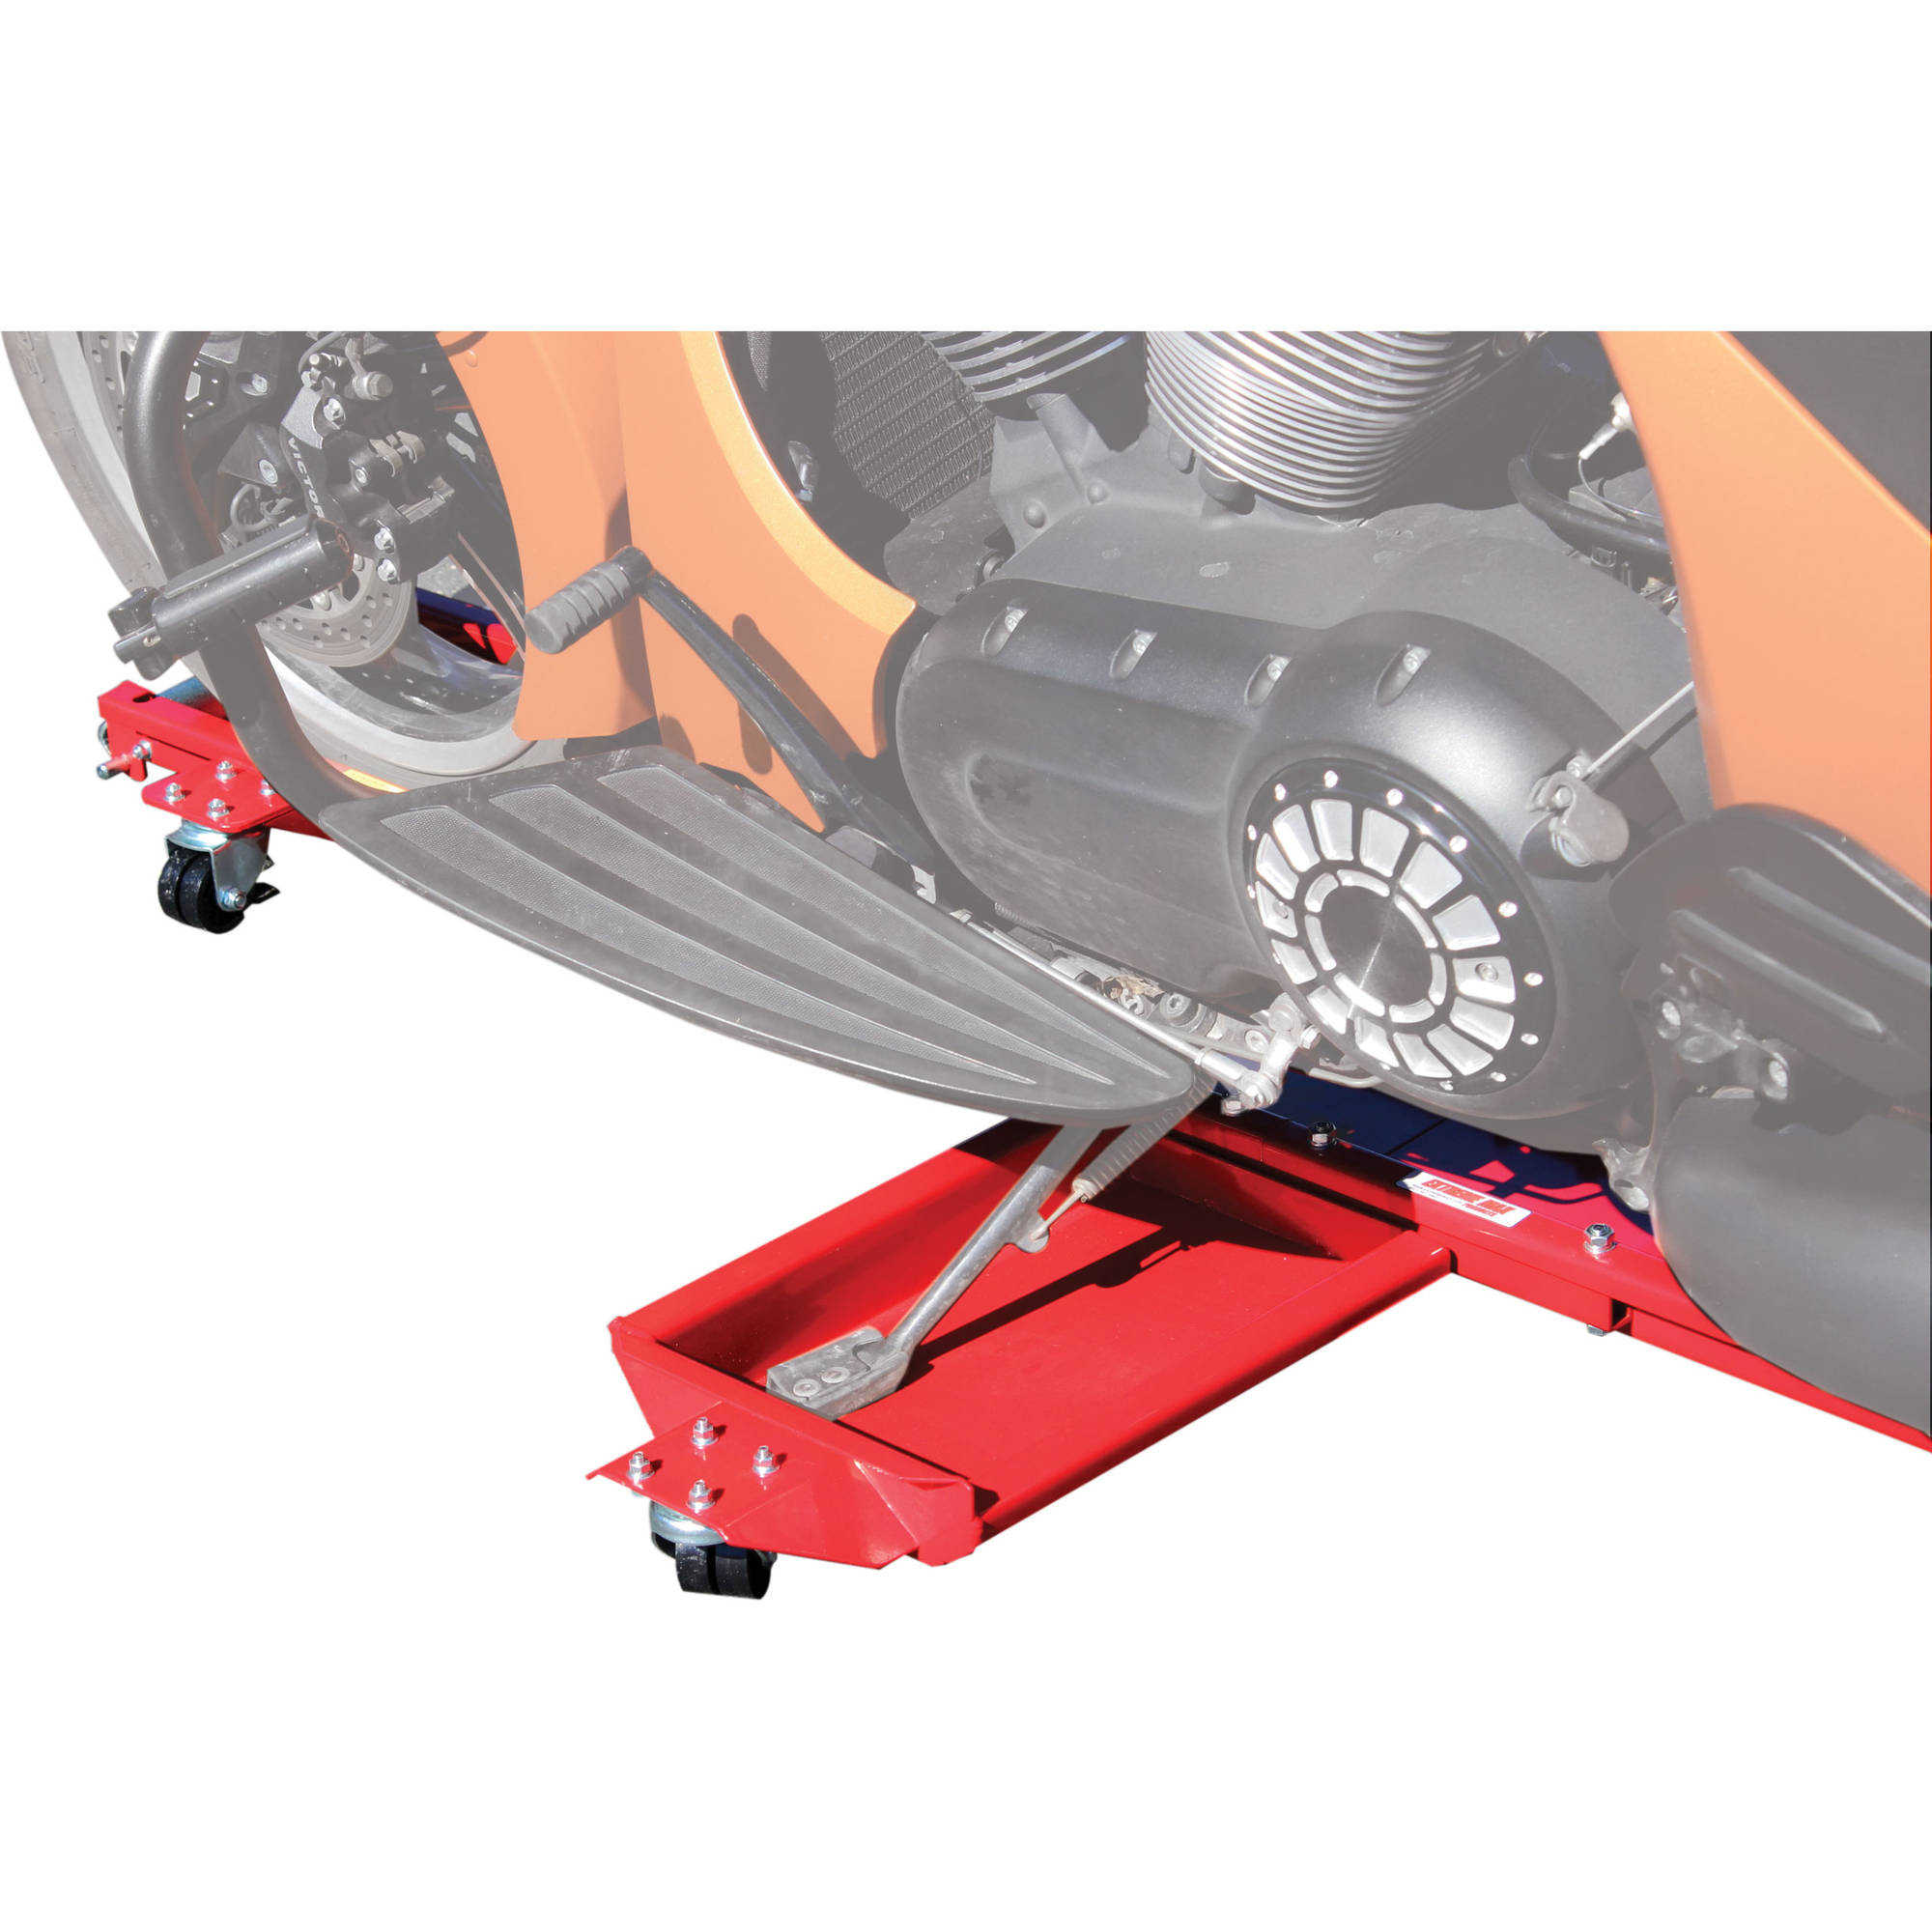 Extreme Max 5001.5077 Motorcycle Dolly 1250 lb.  Standard (76)